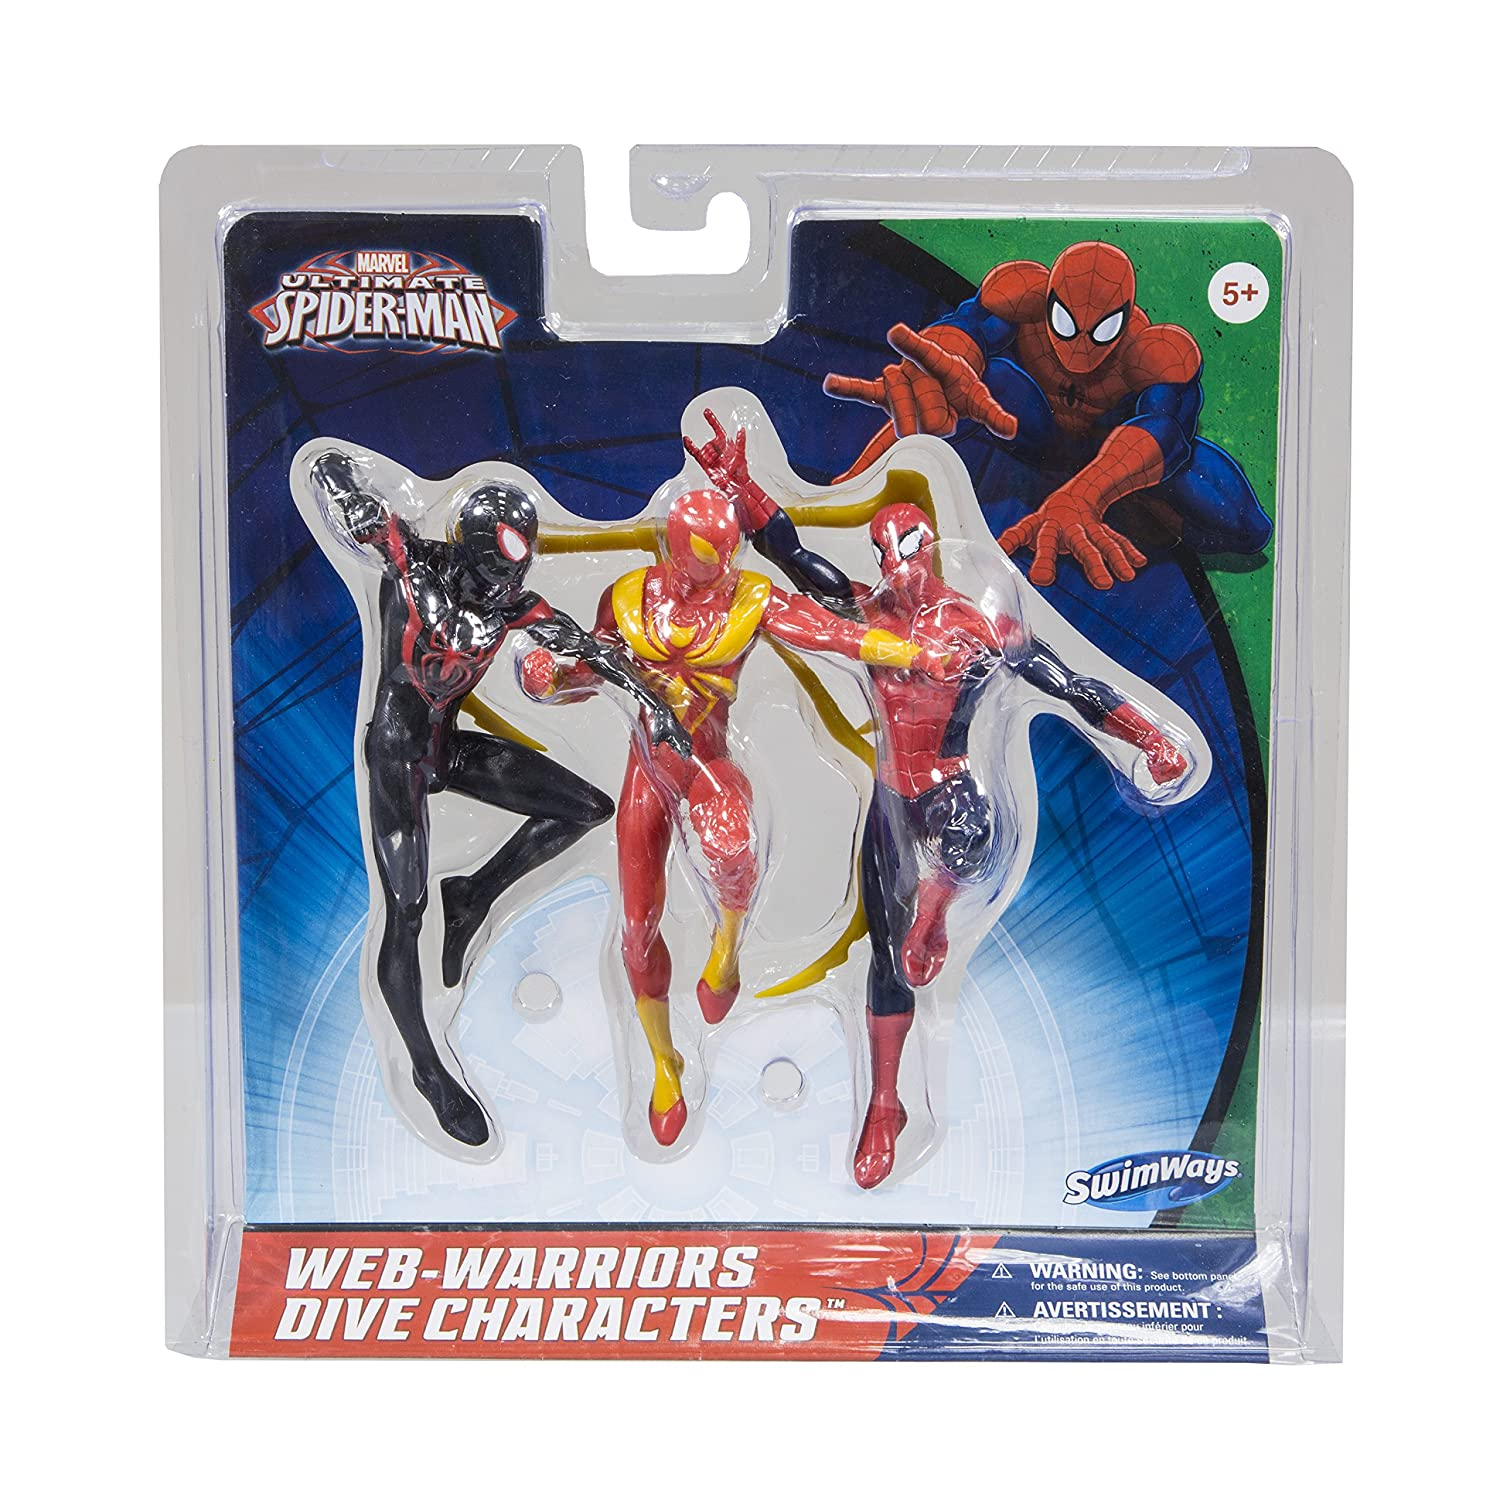 SwimWays/Marvel Spider-Man Dive Characters Swimways Corp 27144